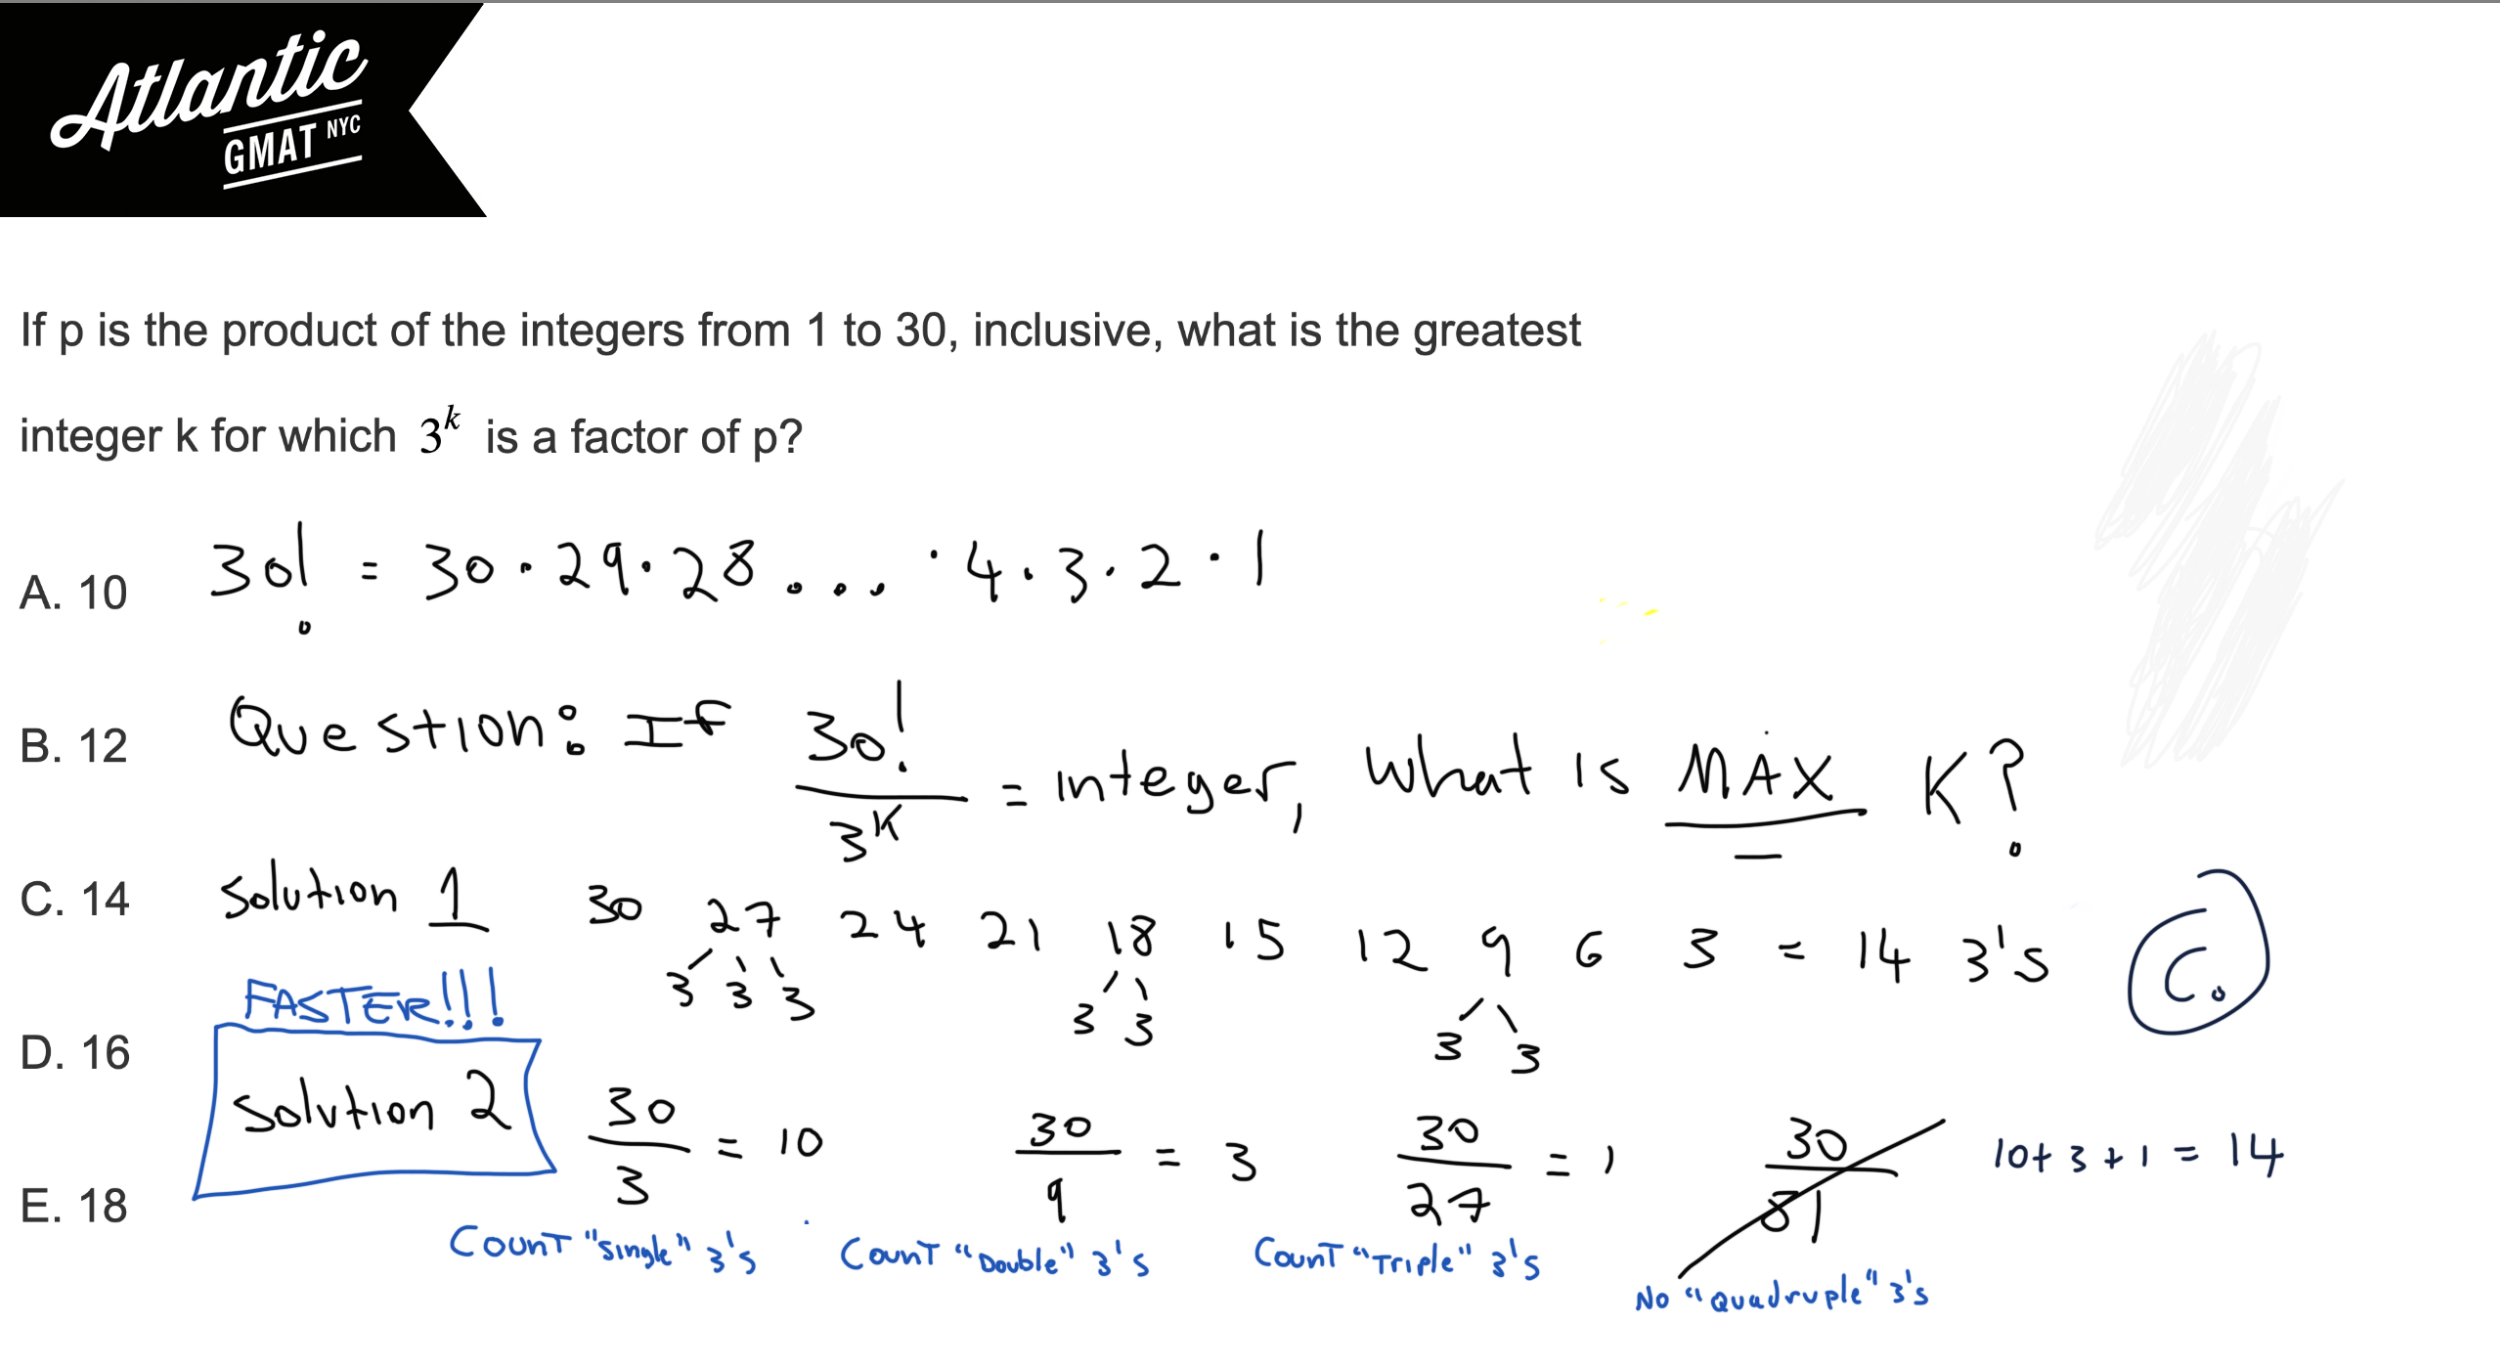 If p is the product of the integers from 1 to 30, inclusive, what is the greatest integer k for which 3k is a factor of p? GMAT Explanation Diagram